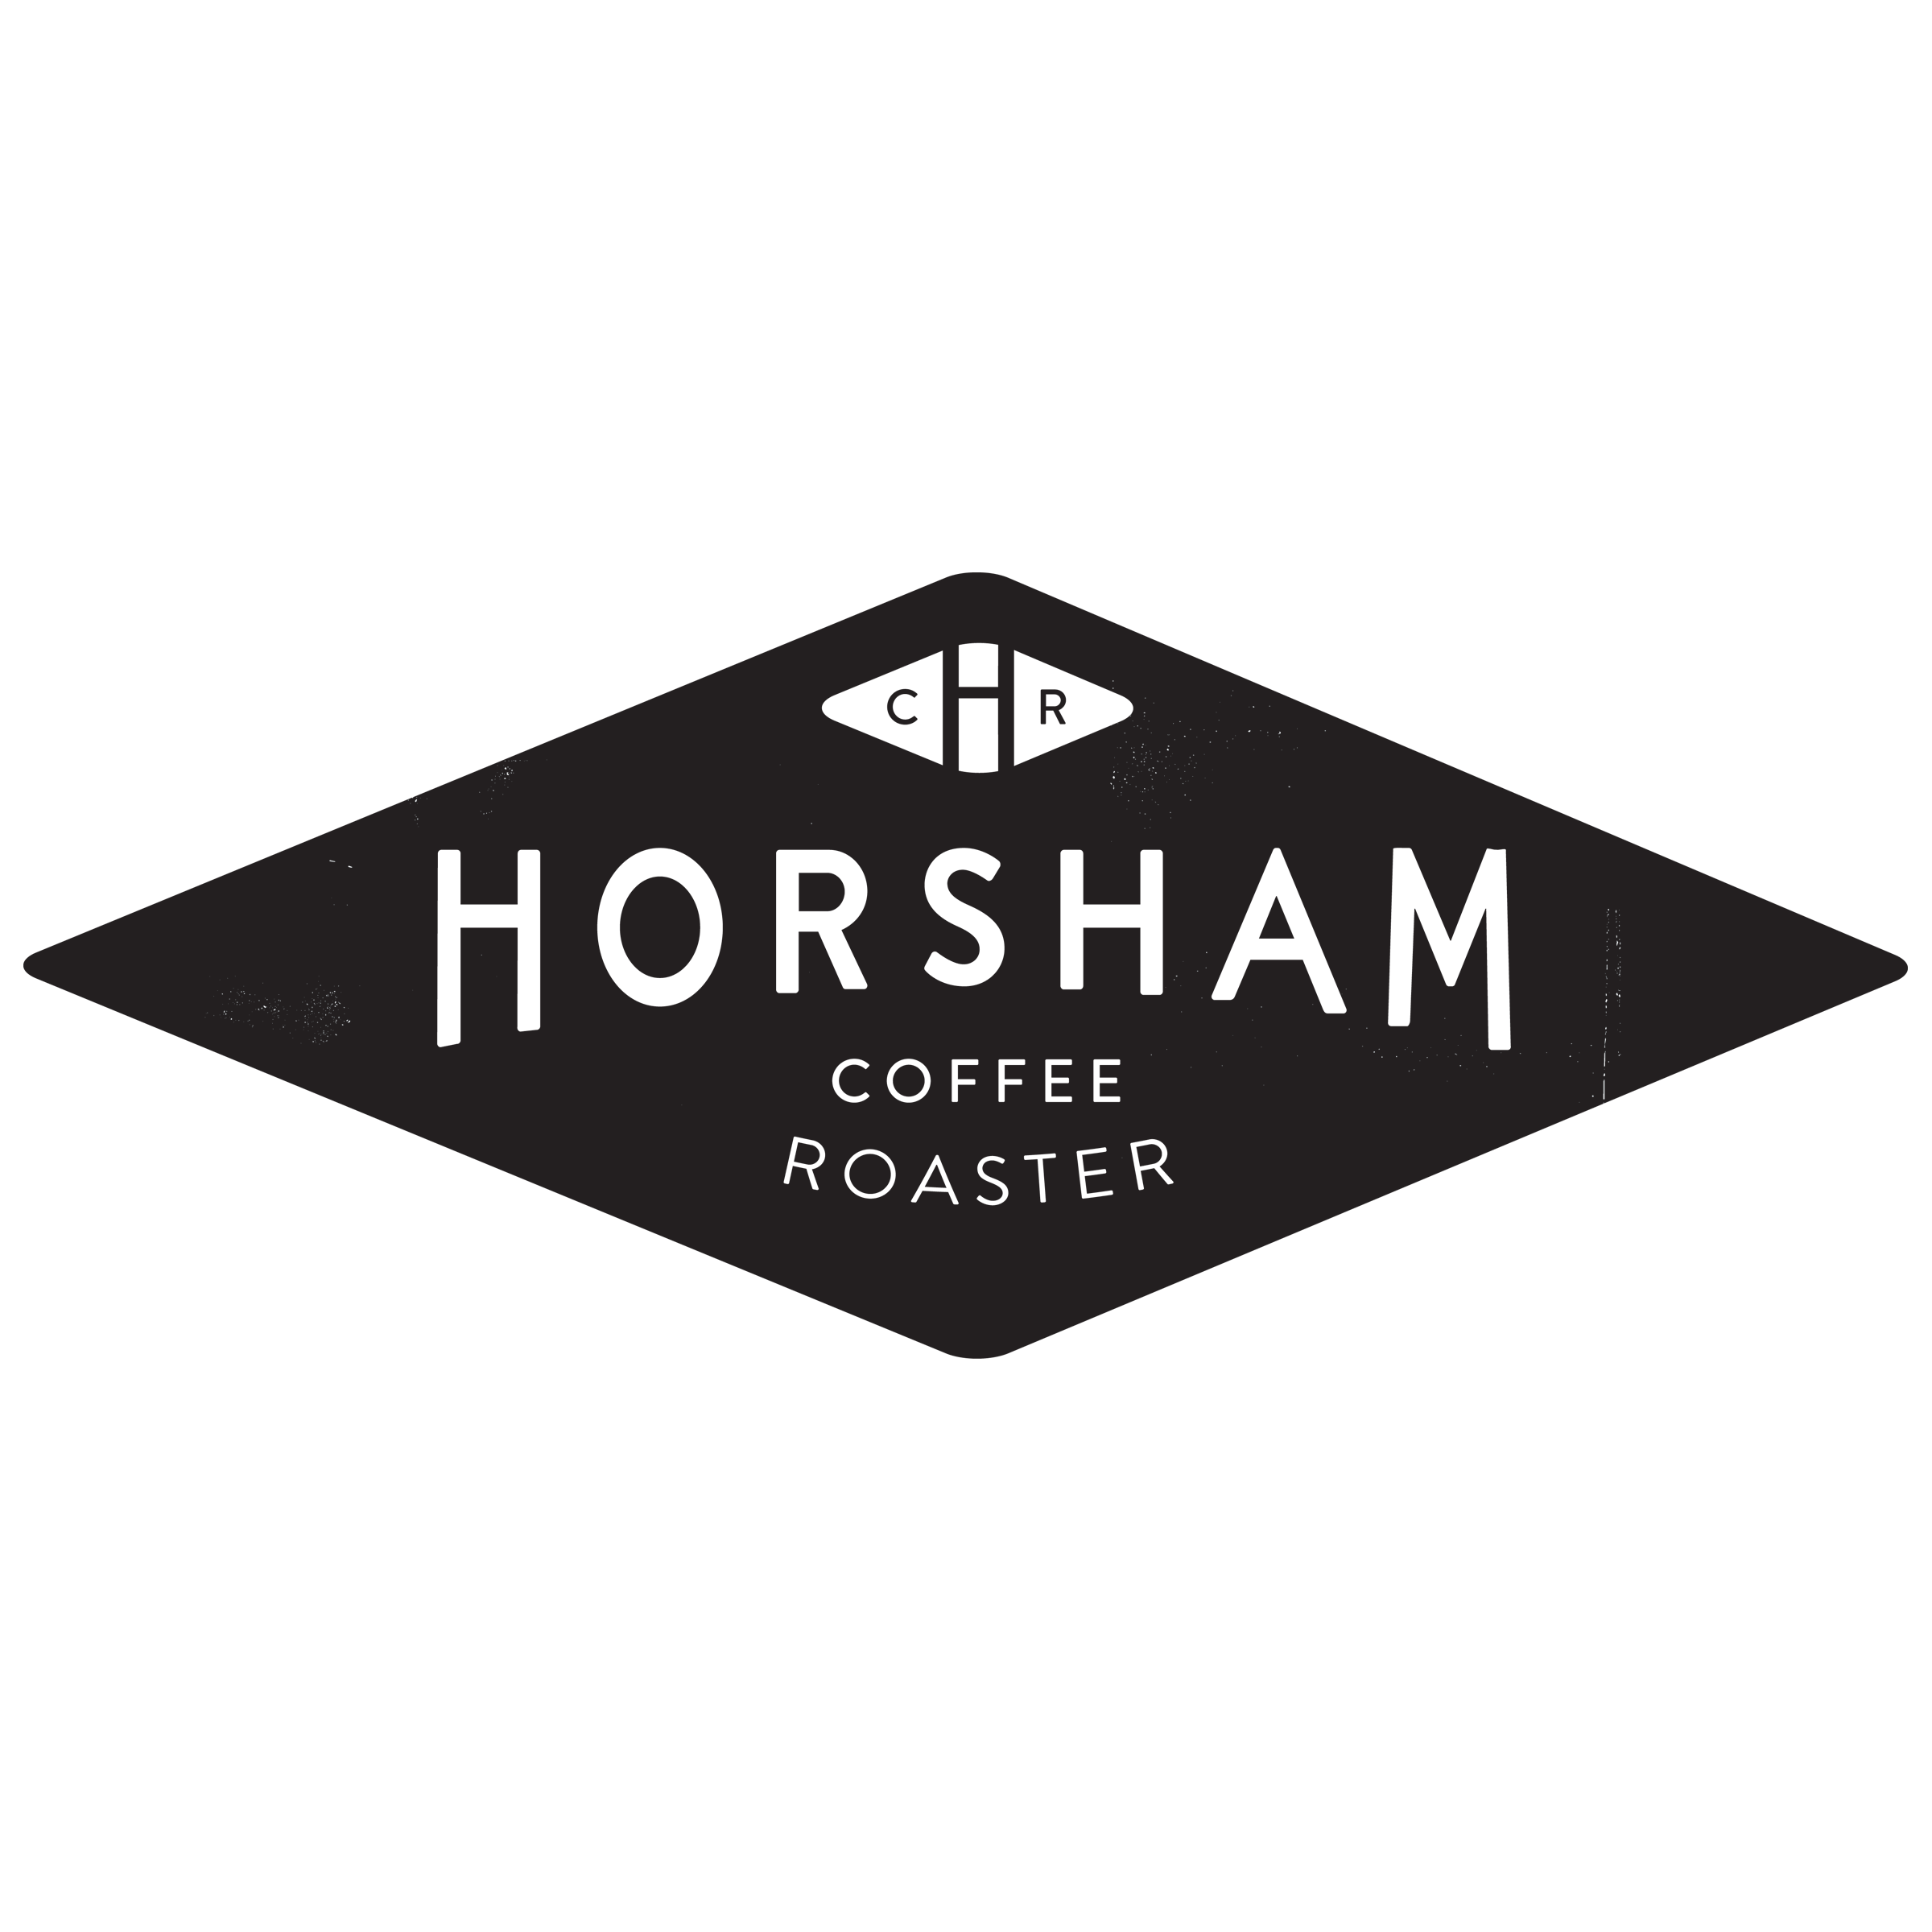 Horsham Coffee Roaster On Coffee Jobs Board